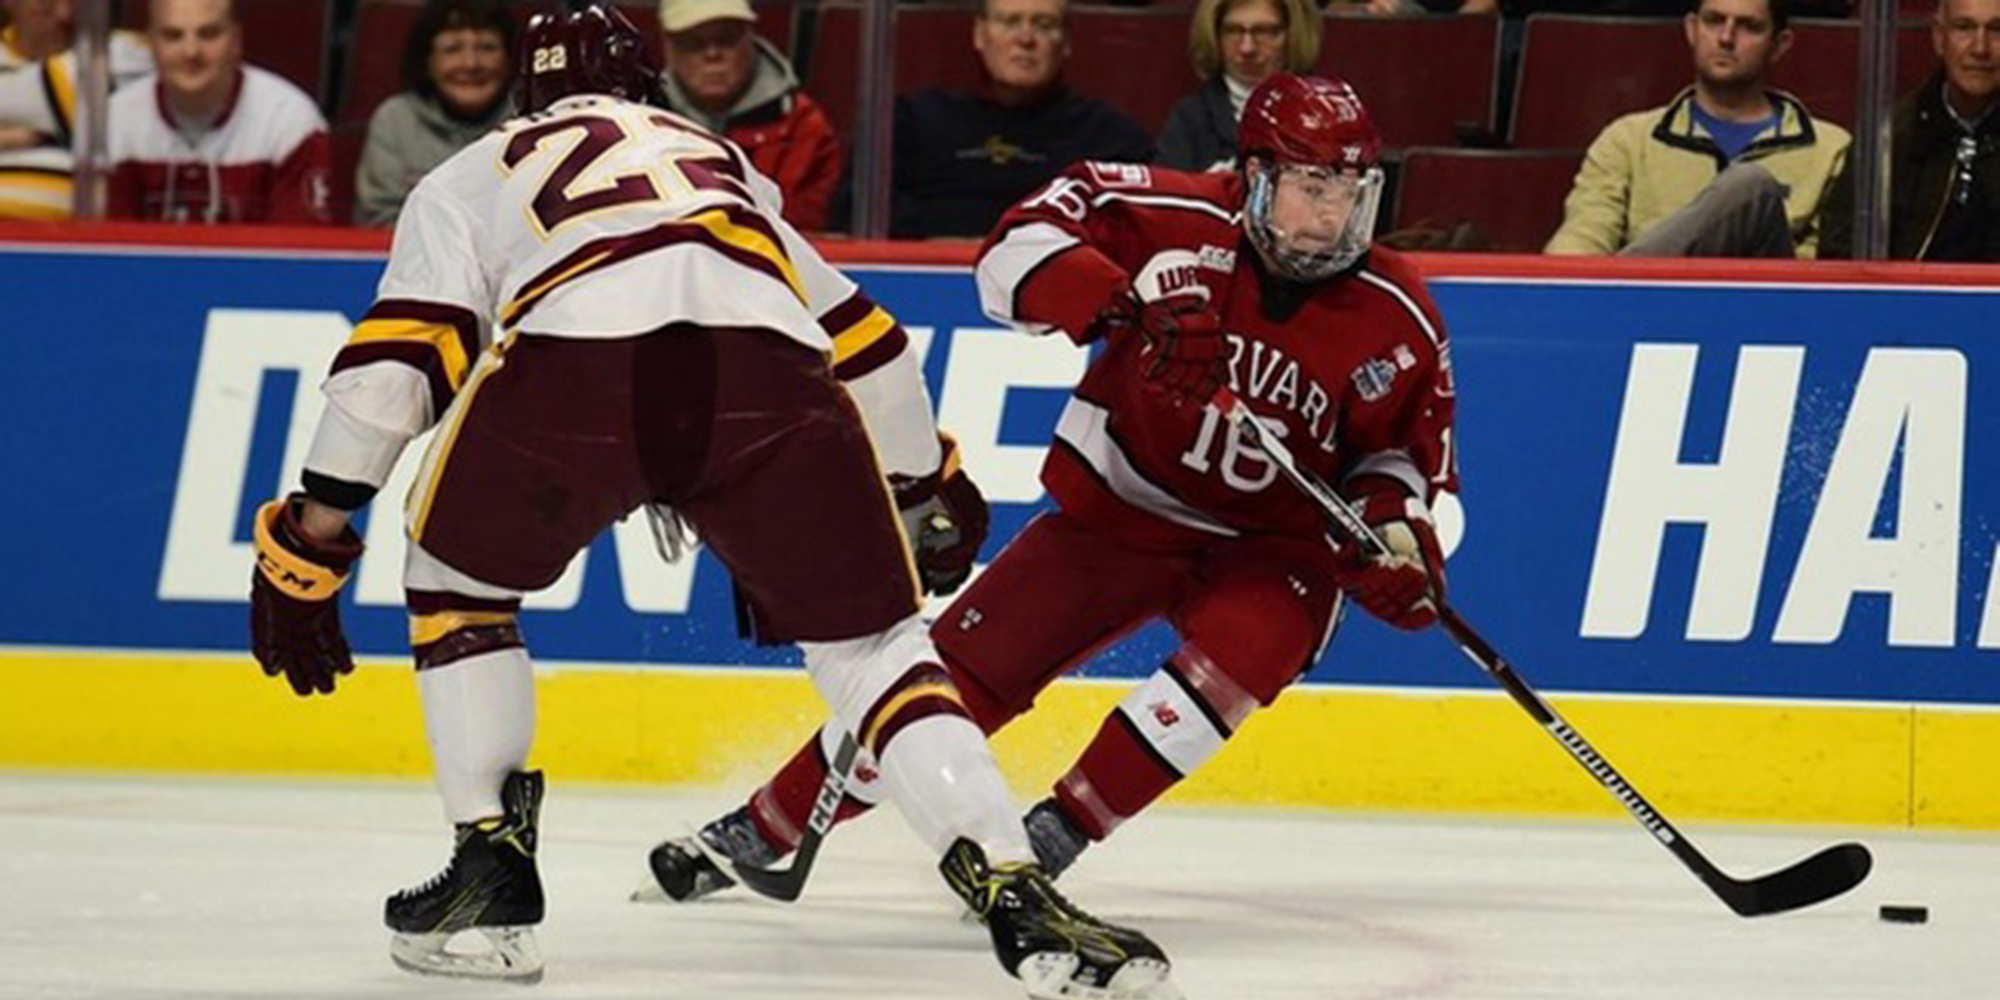 Donato's Four Goals Leads No. 4 Harvard to Victory Over No. 6 Union